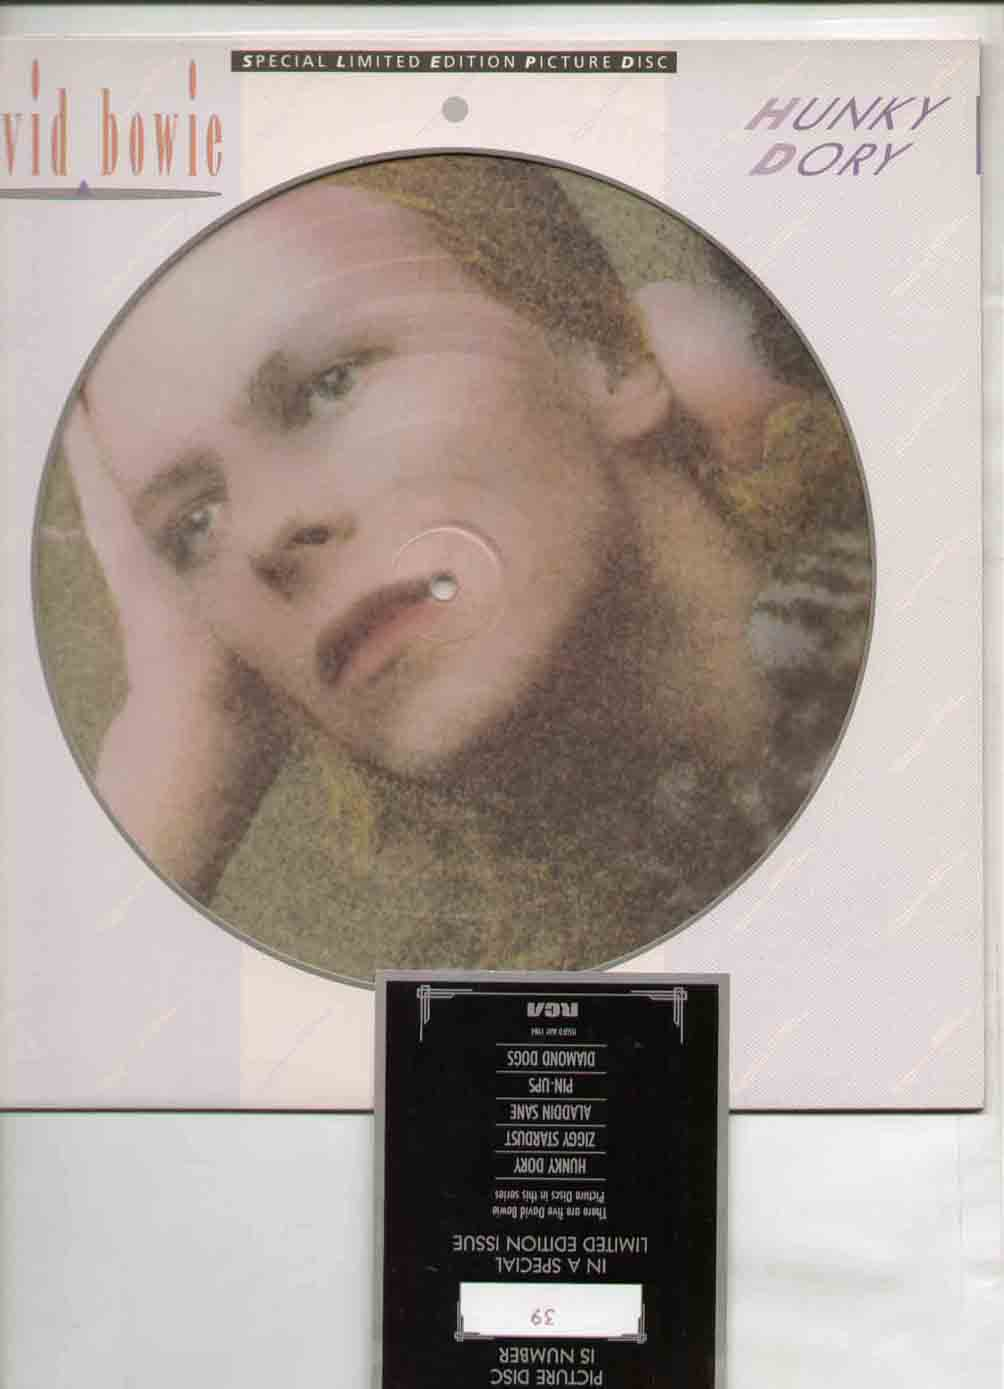 David Bowie Hunky Dory Albums,